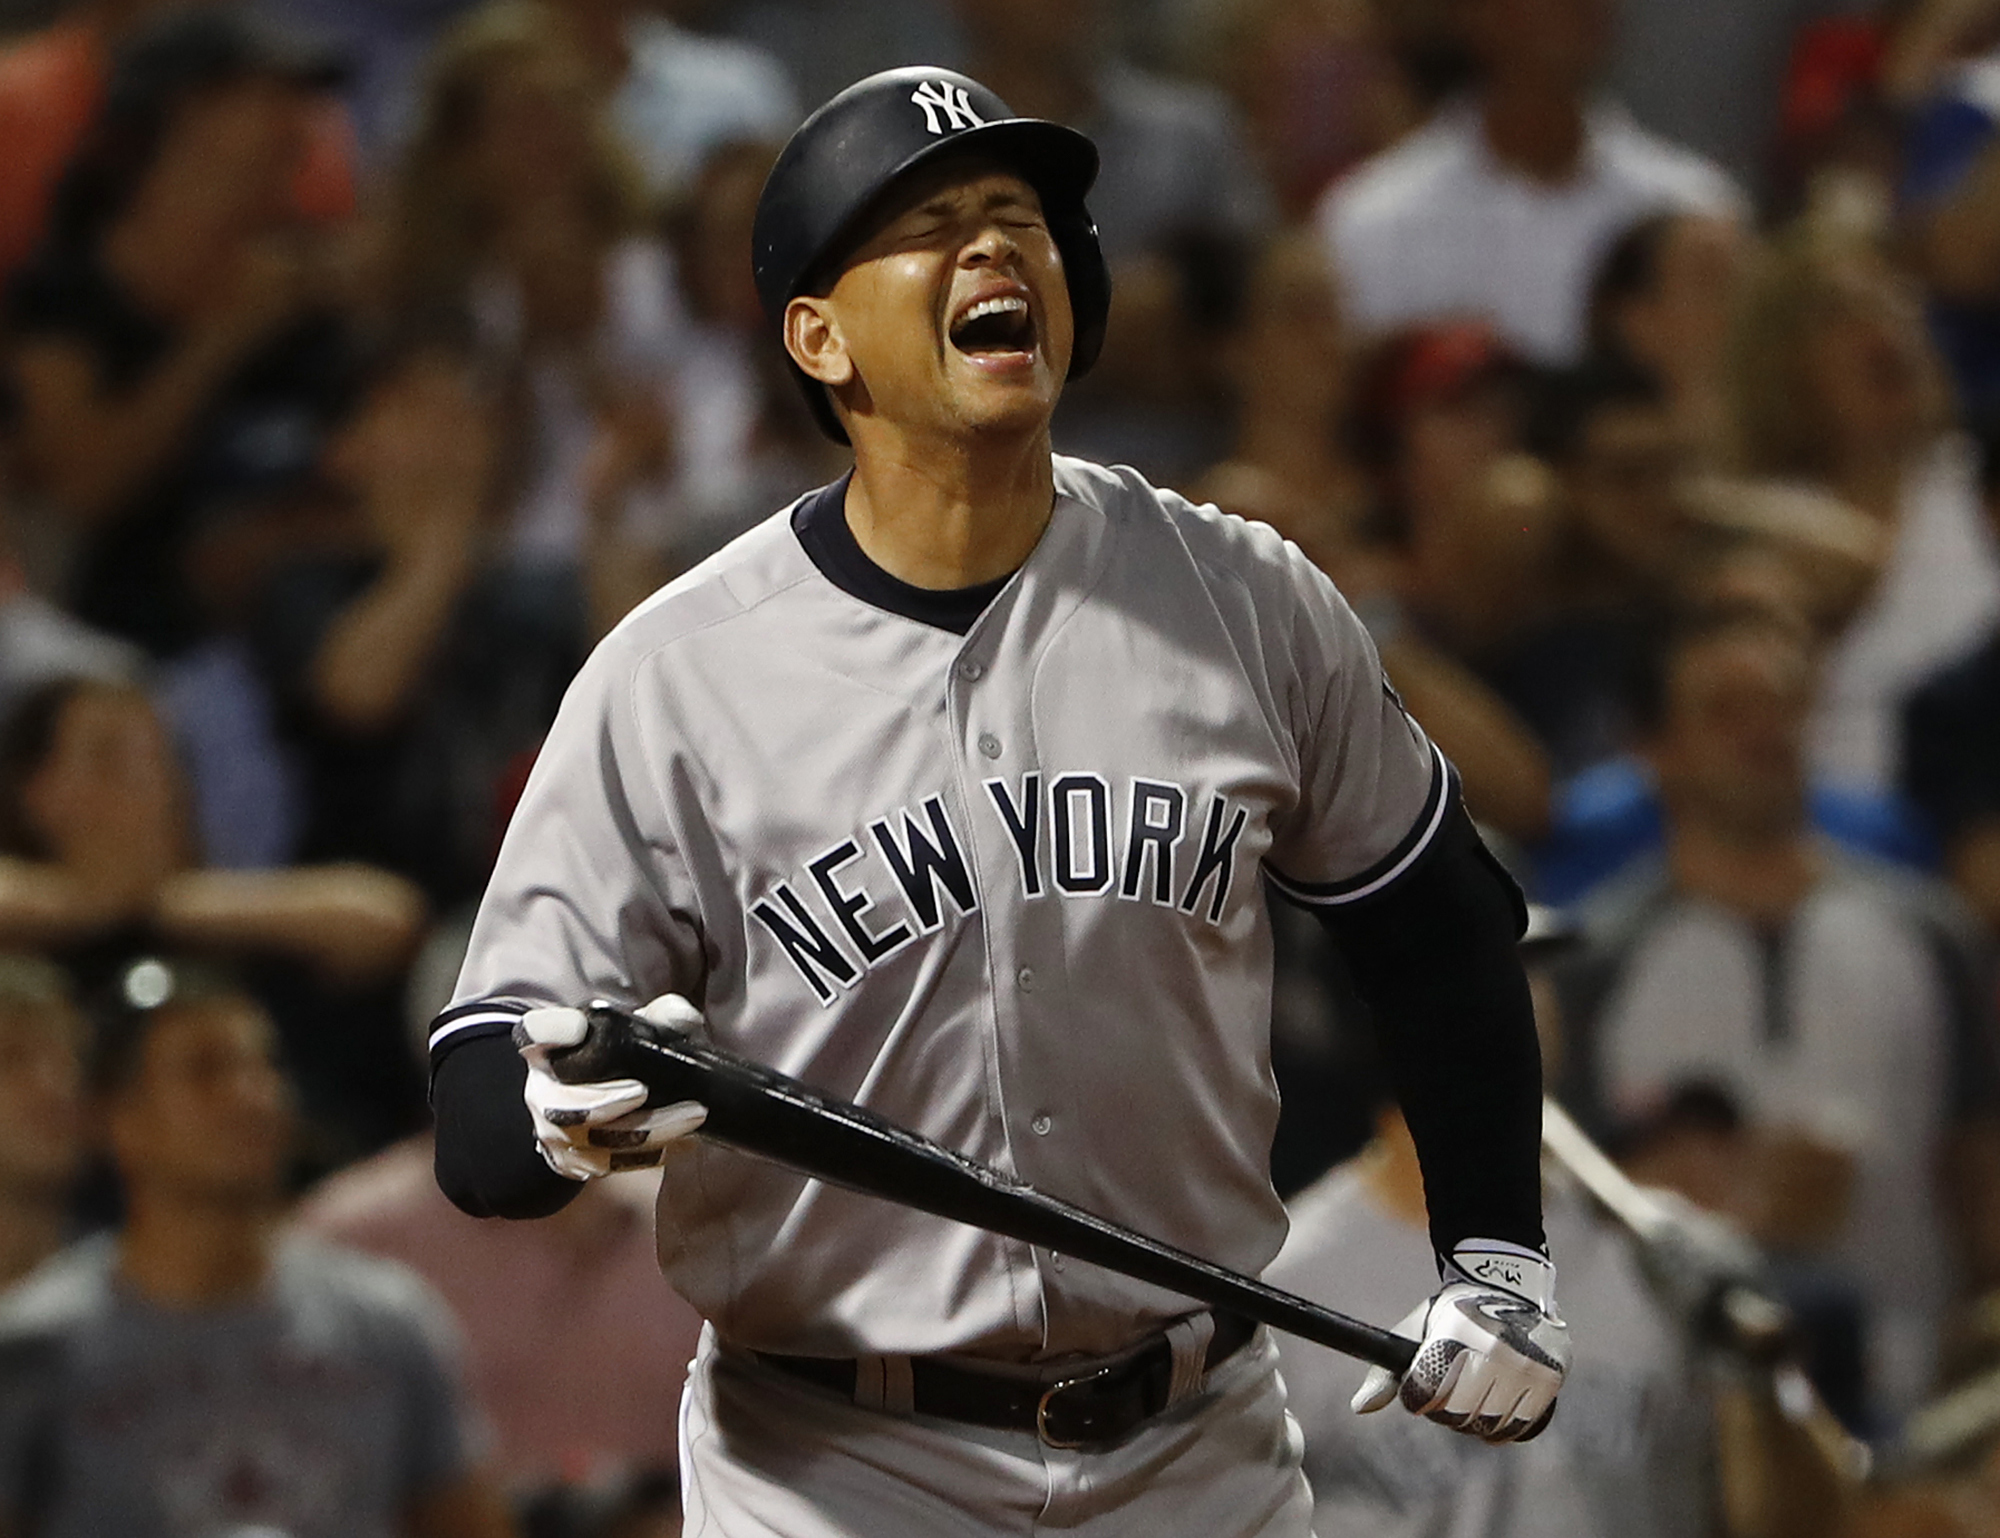 New York Yankees' Alex Rodriguez reacts to flying out as a pinch hitter during the seventh inning of a baseball game against the Boston Red Sox at Fenway Park in Boston on Wednesday, Aug. 10, 2016. (AP Photo/Winslow Townson)